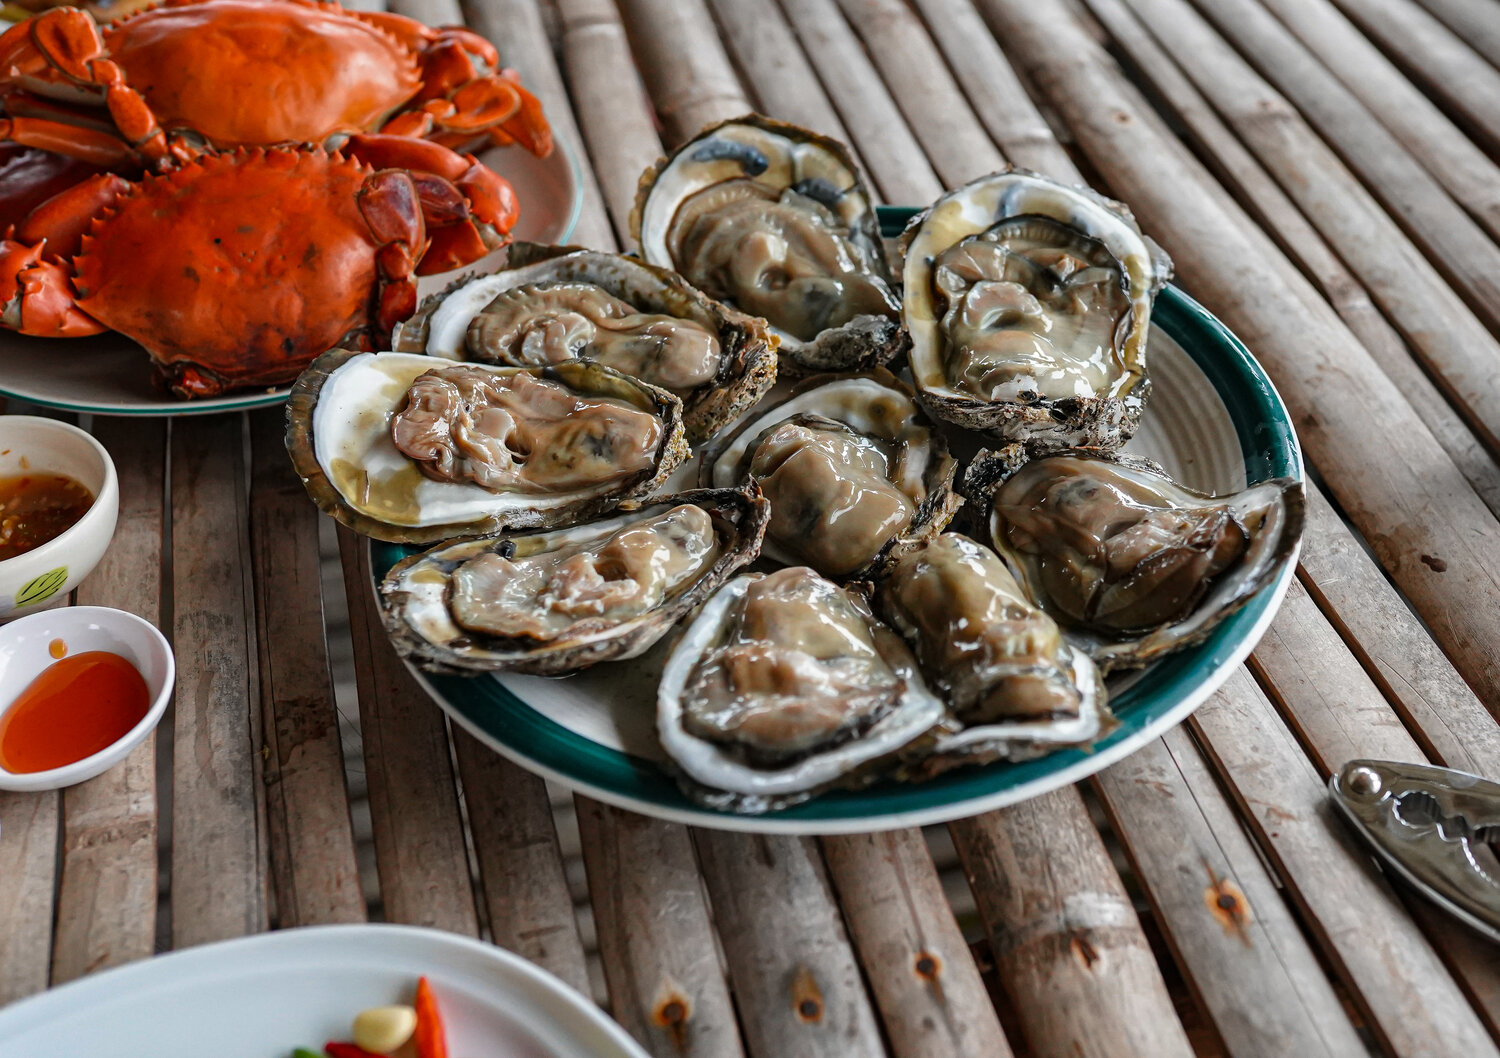 @theyumyumfoodie's cover photo for 'Thailand Off The Beaten Path at Tha Chalaep Oyster Farm. — The Yum Yum Foodie'